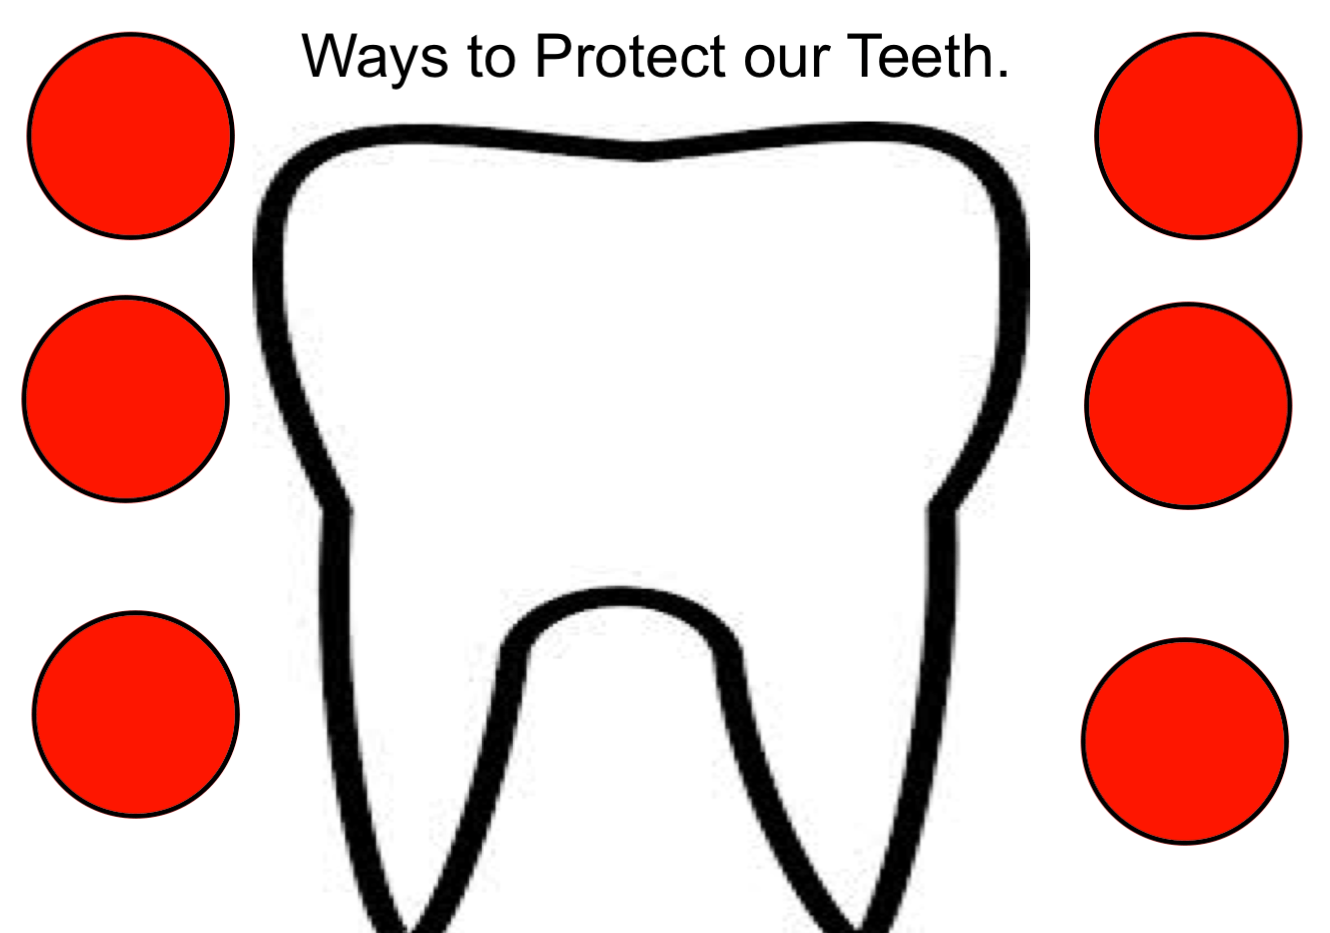 Ways To Protect Your Teeth Smart Notebook Smart Board